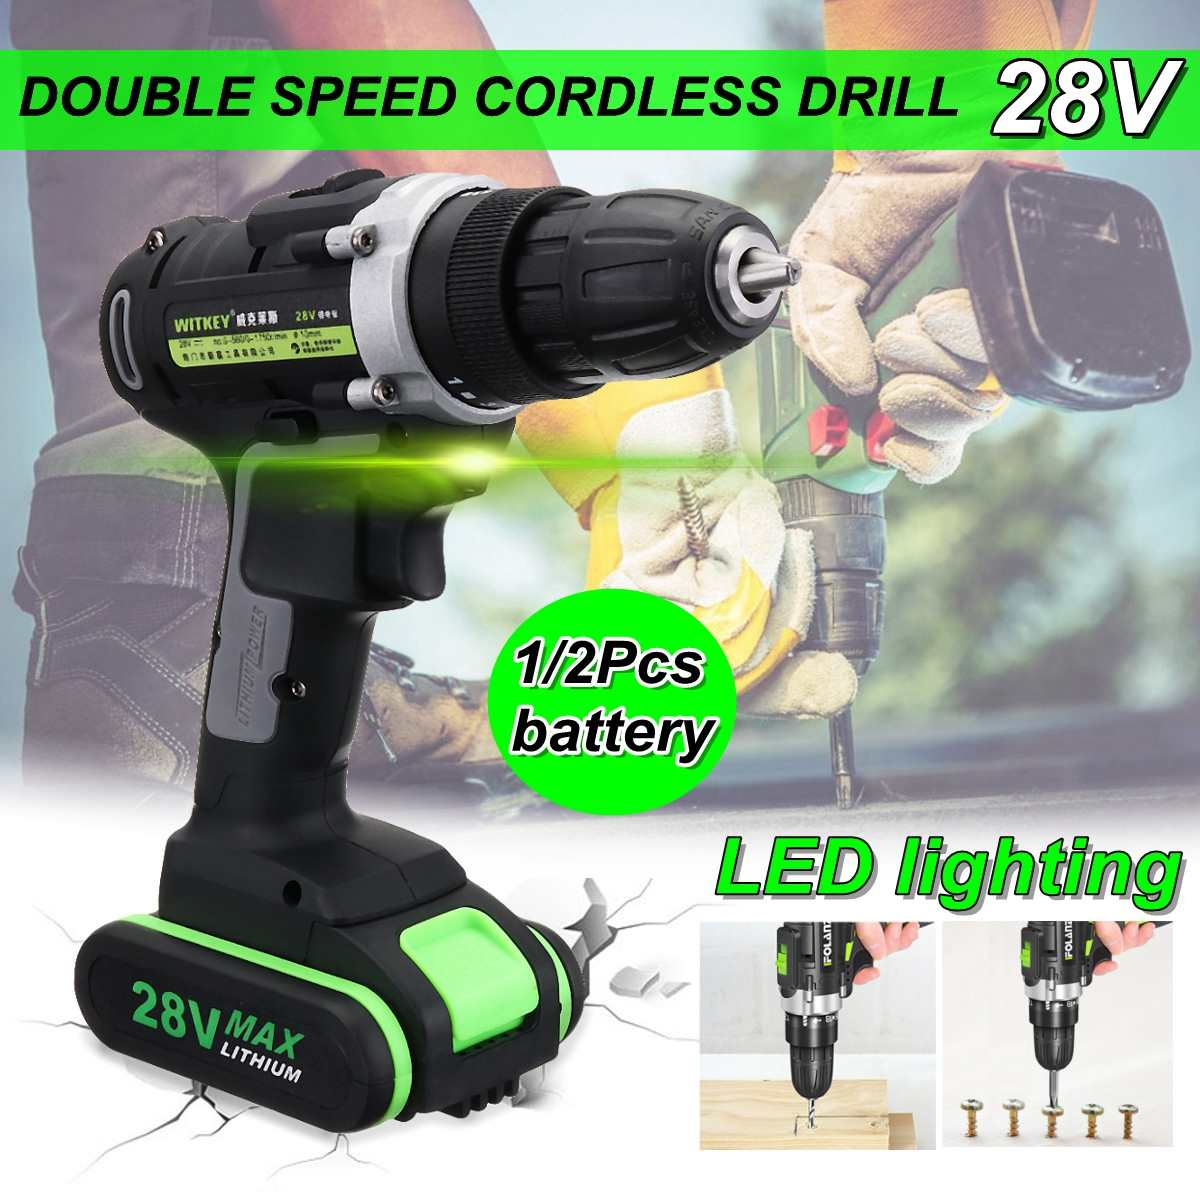 28V Two Speed Variable Wireless Electric Screwdriver Cordless Hammer Drill 0.8-10mm Chuck Driver Power 48Nm Led Light Power Tool28V Two Speed Variable Wireless Electric Screwdriver Cordless Hammer Drill 0.8-10mm Chuck Driver Power 48Nm Led Light Power Tool